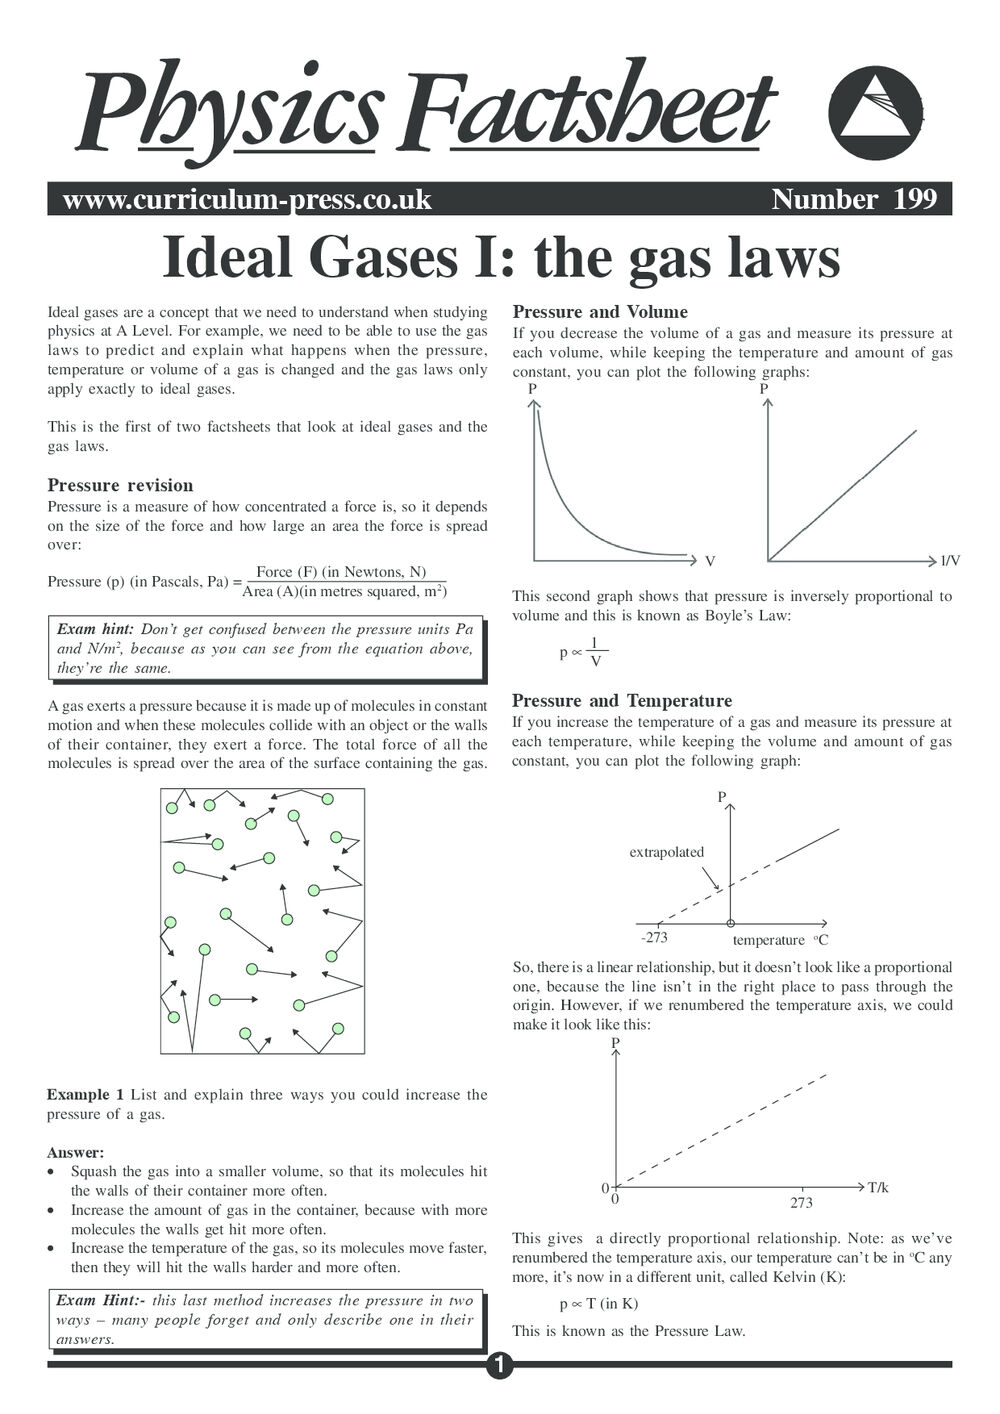 Ideal Gases I: the Gas Laws - Curriculum Press